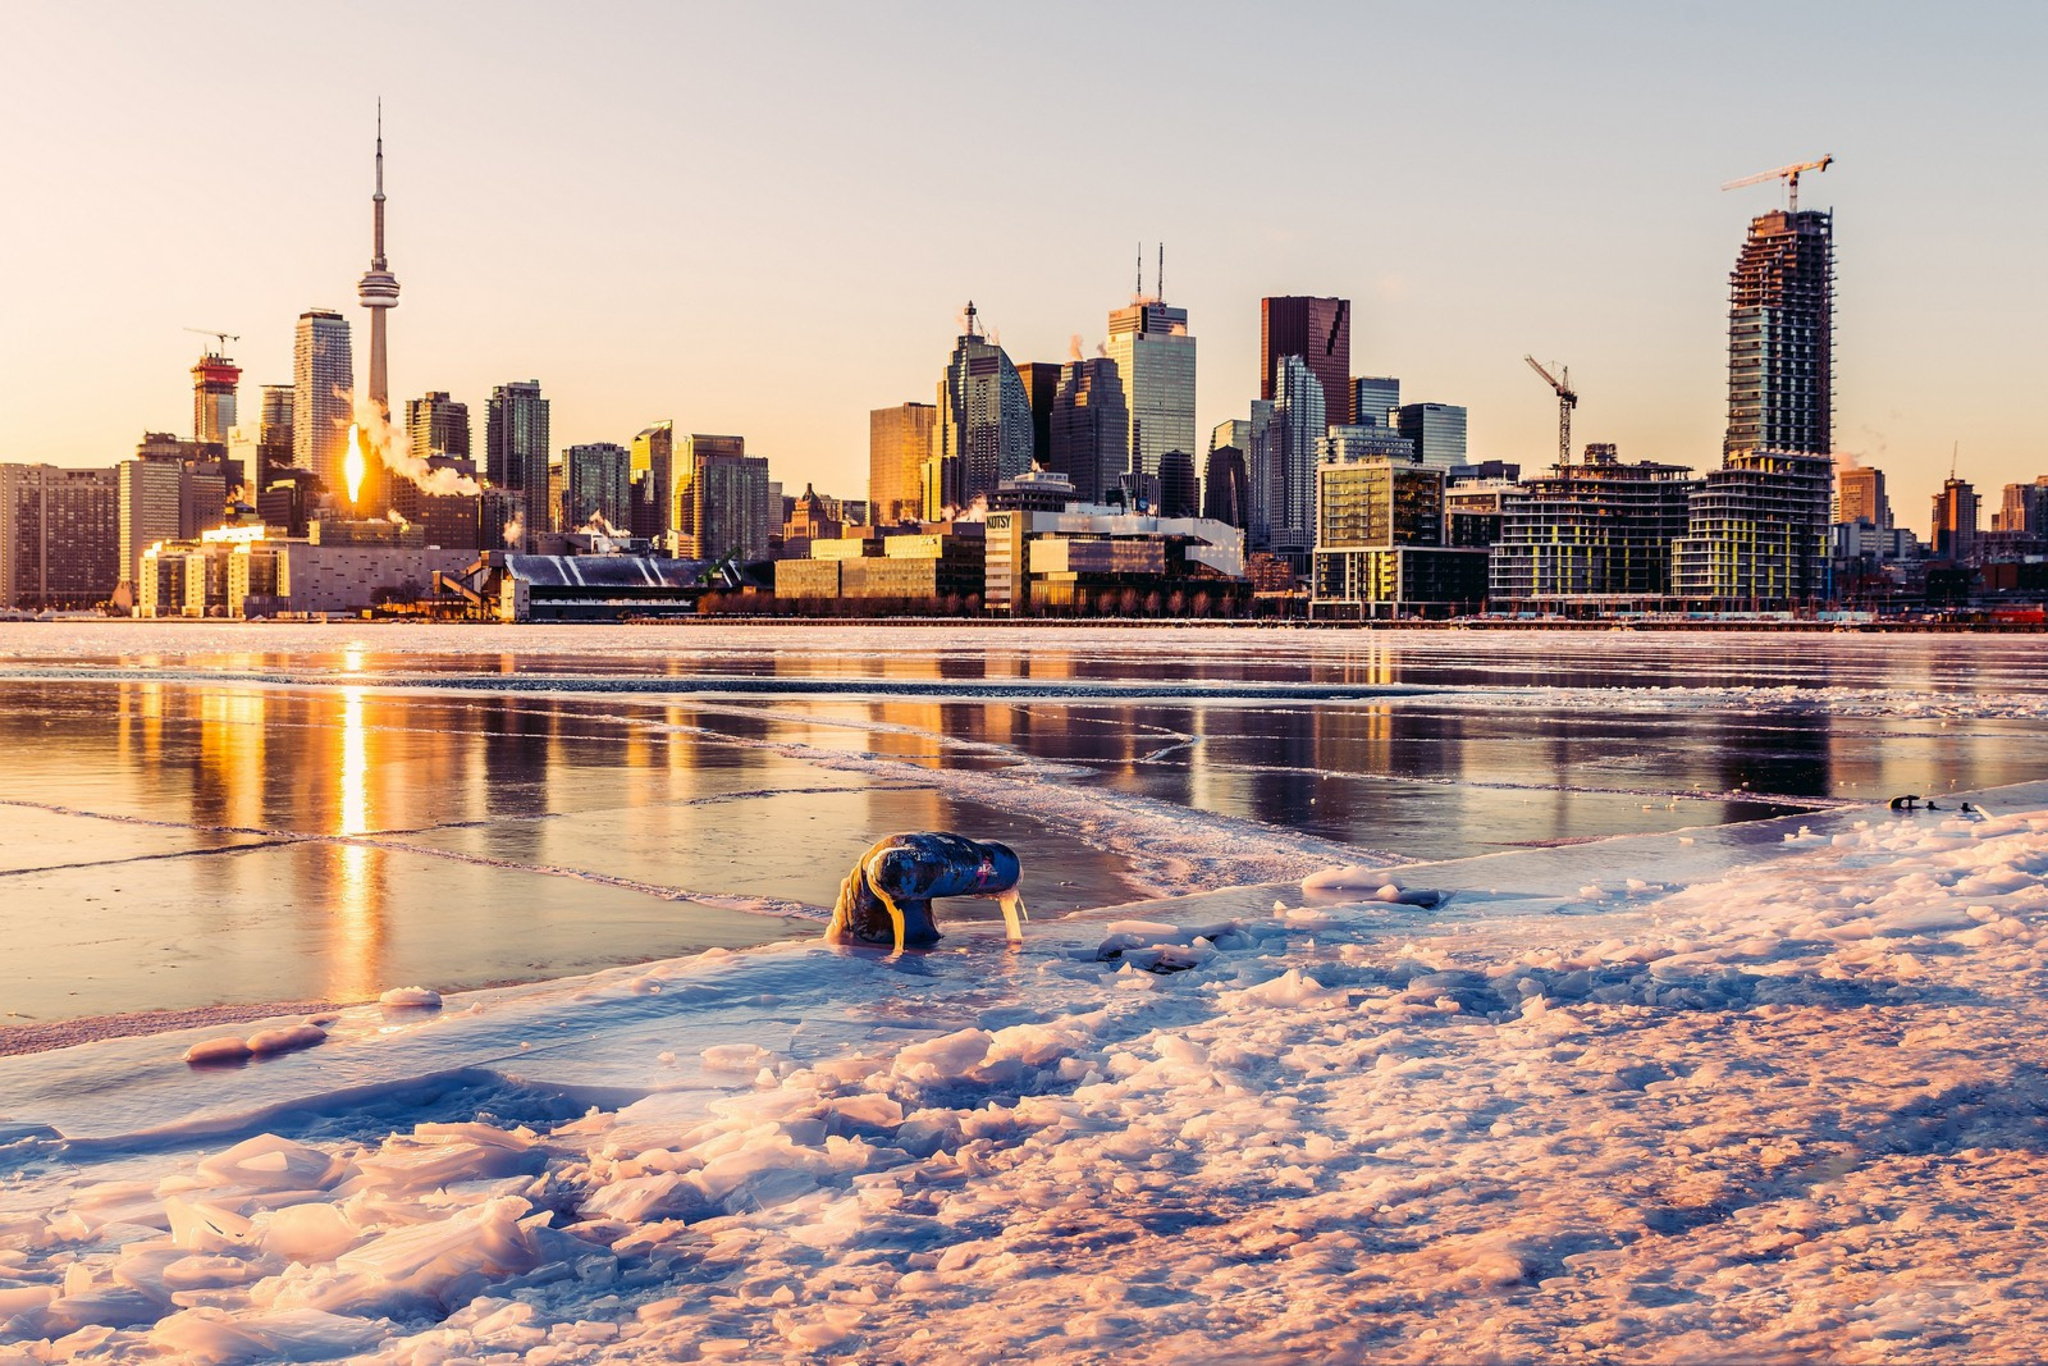 Toronto Weather: Frigid Weather Expected In Toronto Through Late March